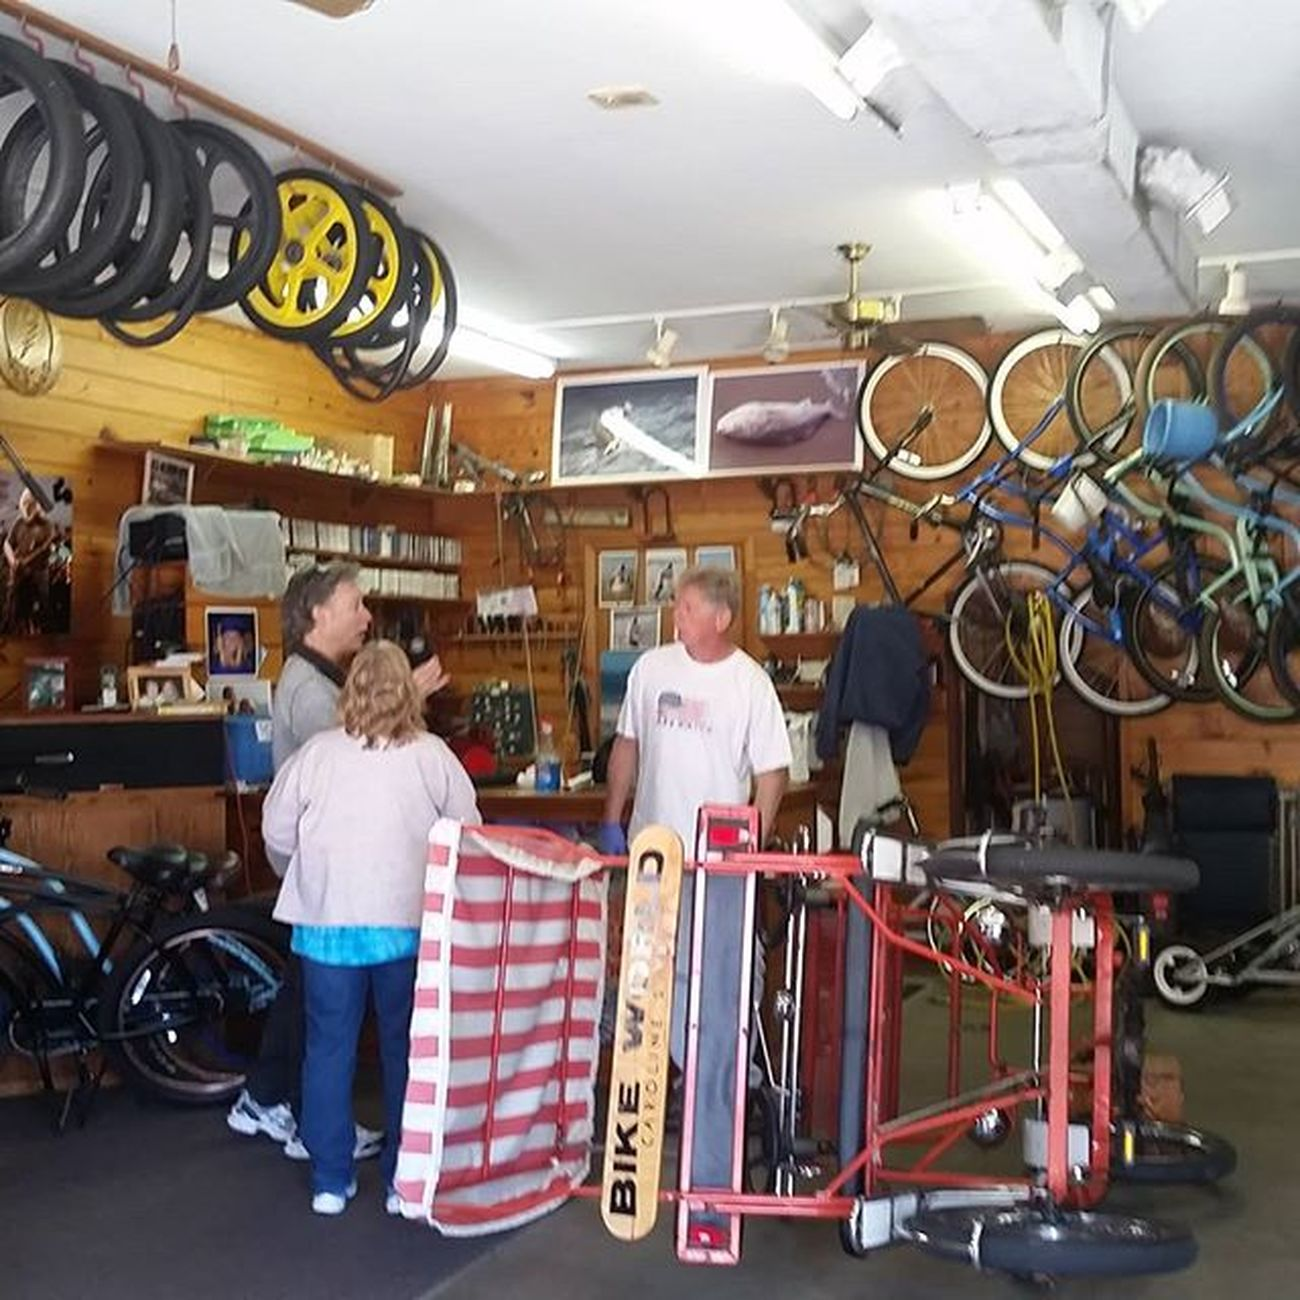 All kinds of bikes to ride at Bike World,open every day... Oceancitycool OceanCity Maryland Ocmd Ocfitness Bicycling